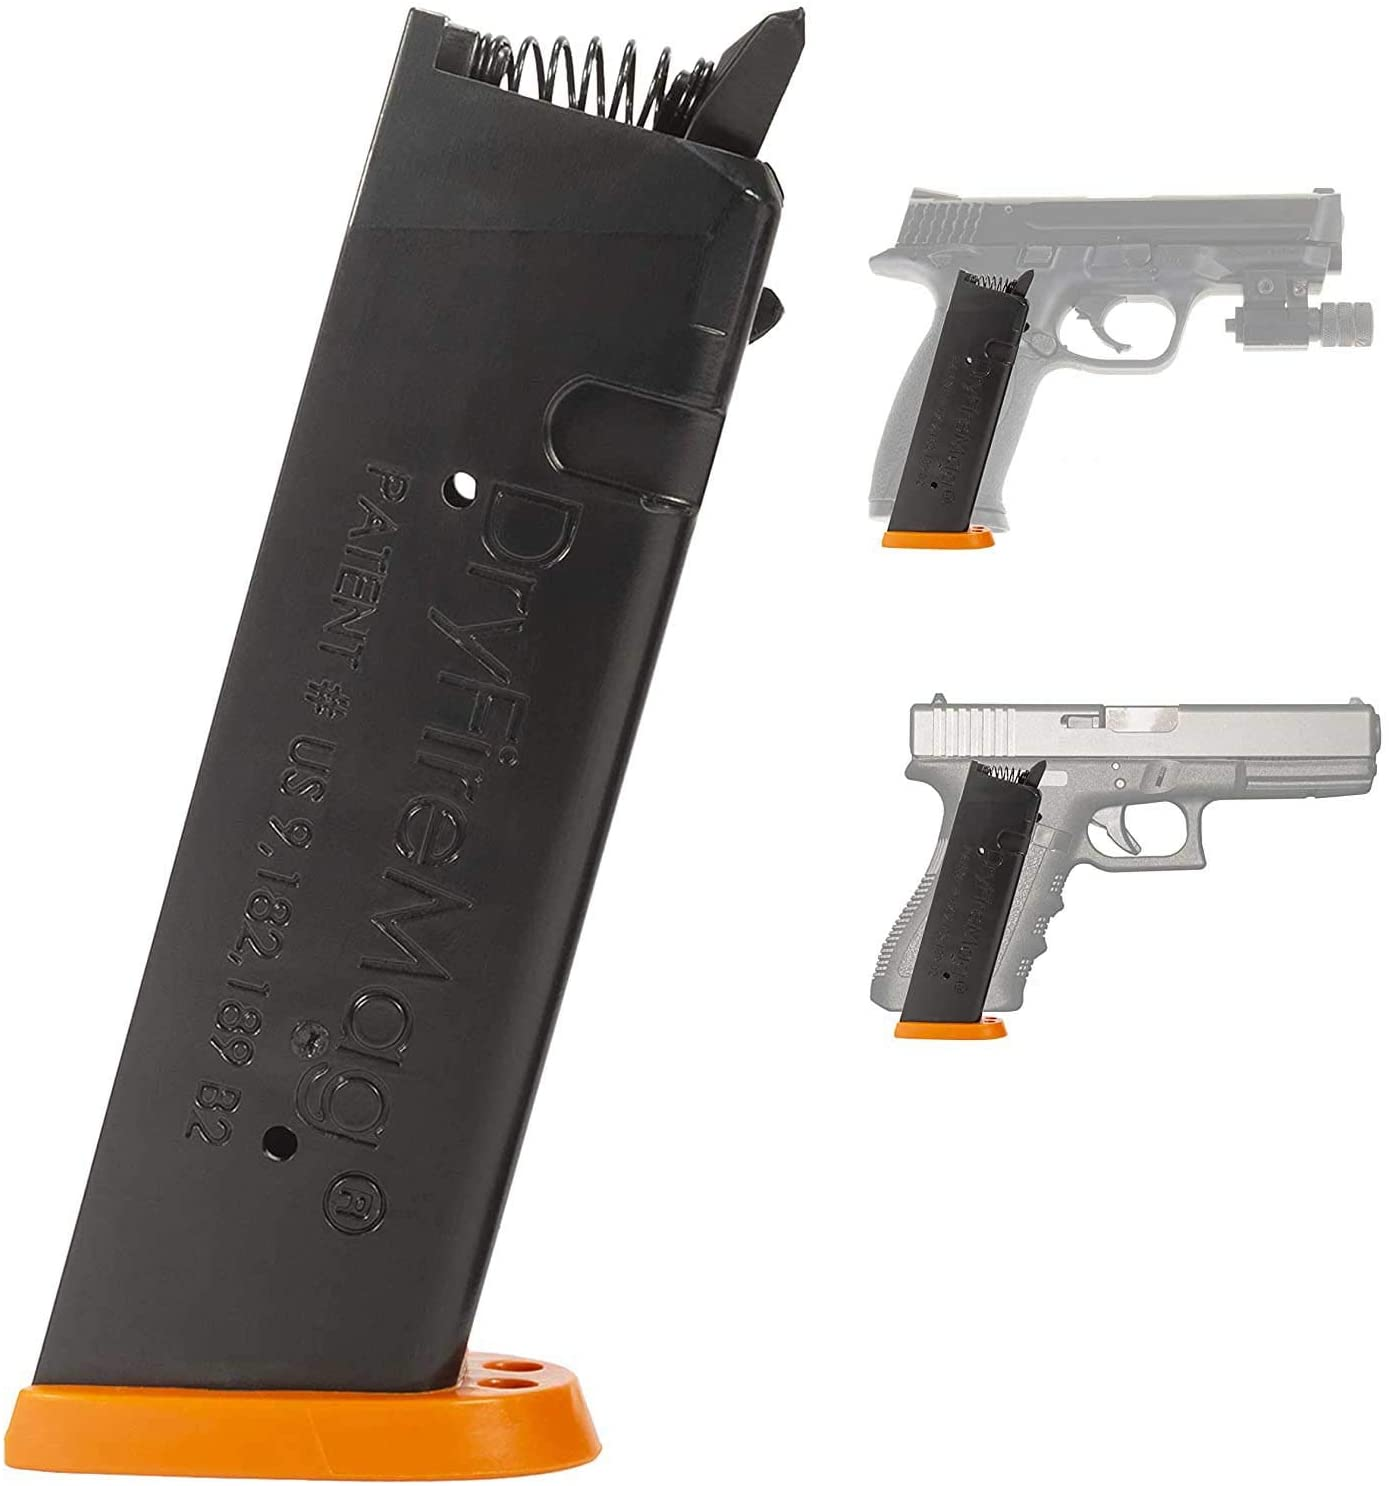 Amazon Com Dryfiremag Training Magazine For Smith Wesson M P Dry Fire Training With Audible Tactile Simulation Apex Trigger Compatible Safe For Use At Home And Uses No Ammo Sports